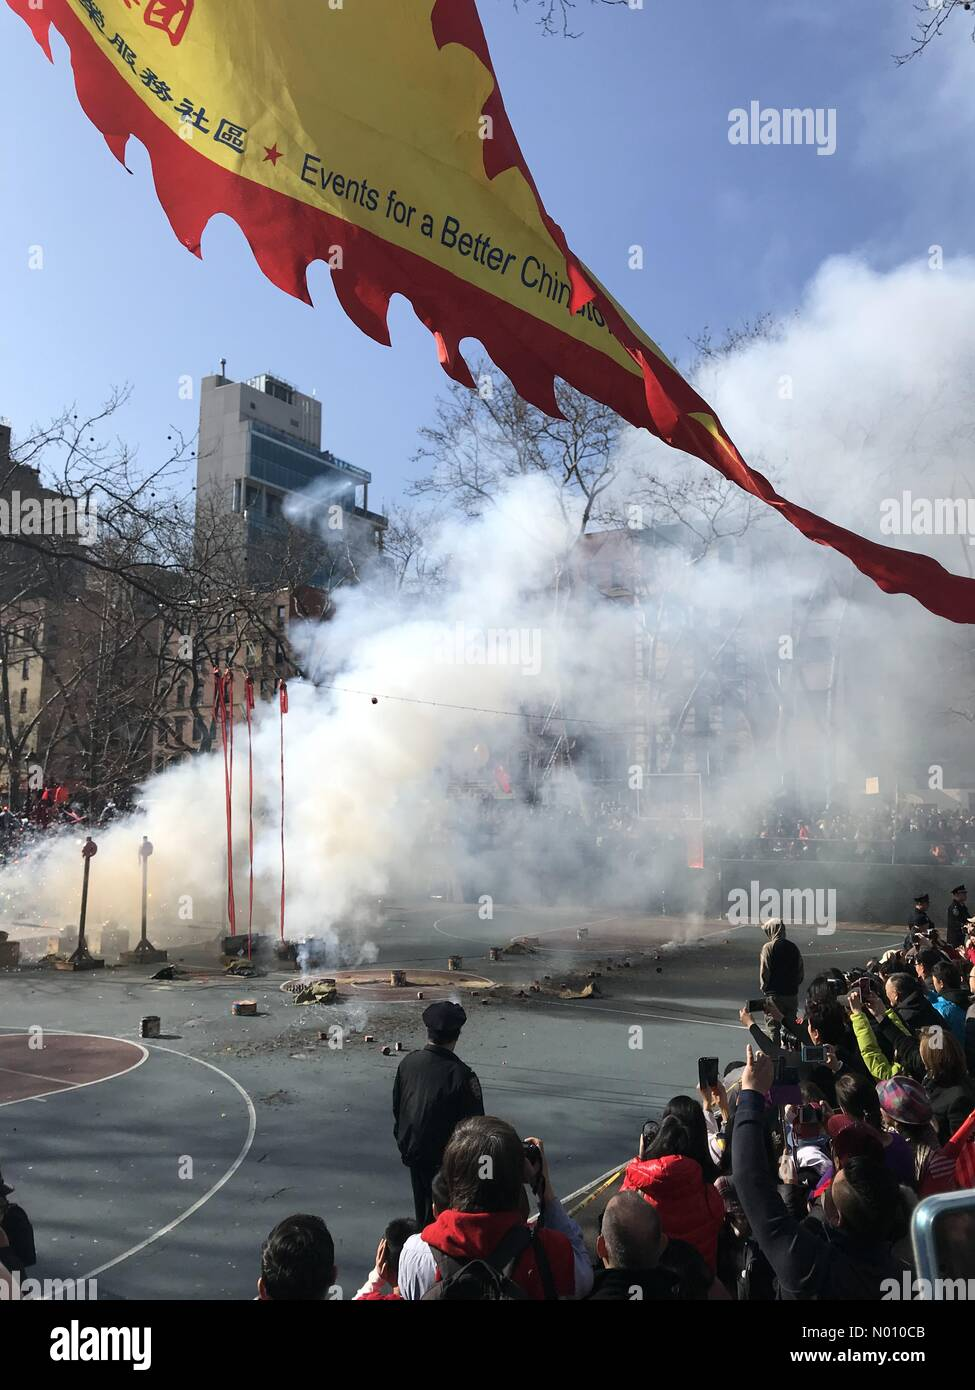 New York City, NY, USA- February 5, 2019: Spectators gather in Sara D. Roosevelt Park to watch the firecrackers explode to celebrate the Chinese New Year. Credit: TD Dolci/StockimoNews/Alamy Live News Stock Photo